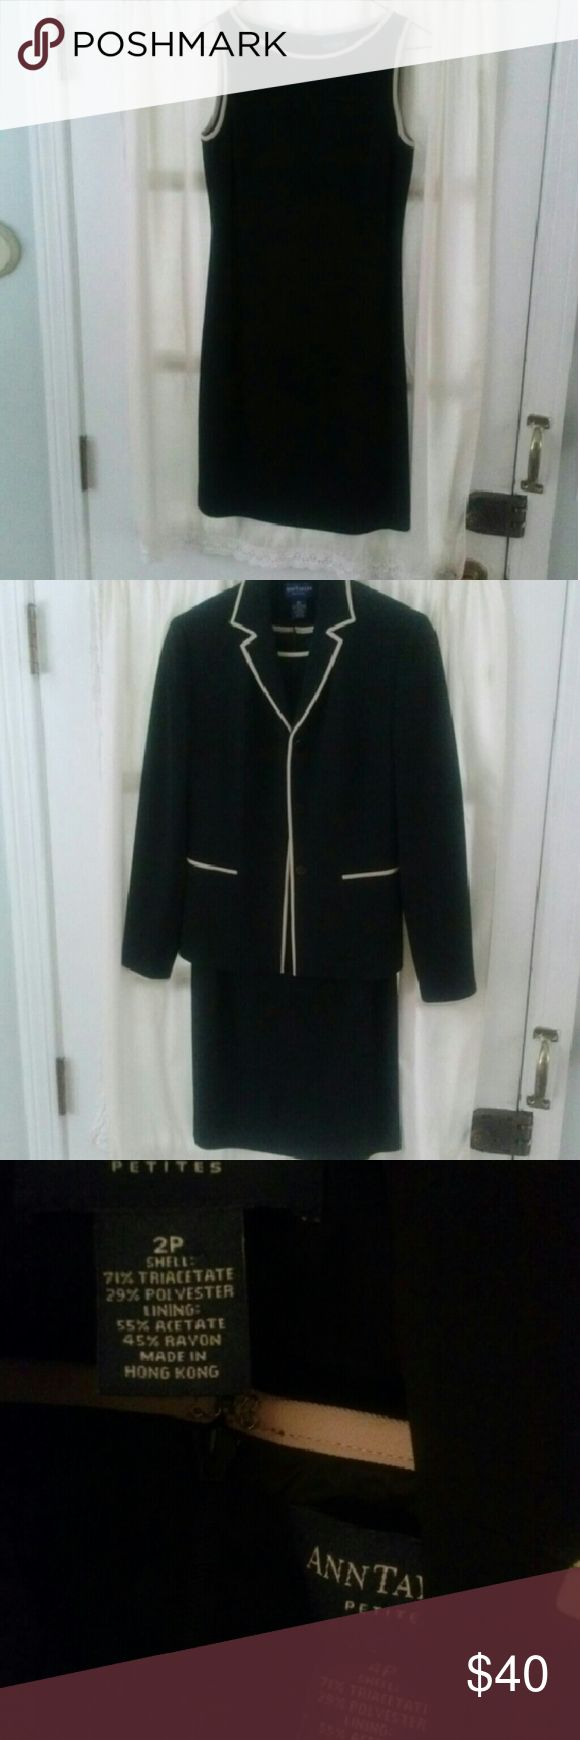 ANN TAYLOR PETITES TWO PIECE SUIT, DRESS & JACKET The little black dress and matching blazer make for the perfect suit!  You can wear this suit to work and take the jacket off for an evening out!  The dress is a 4 petite and the jacket is a 2 petite.   They are in excellent condition!  More pics available. Ann Taylor Dresses